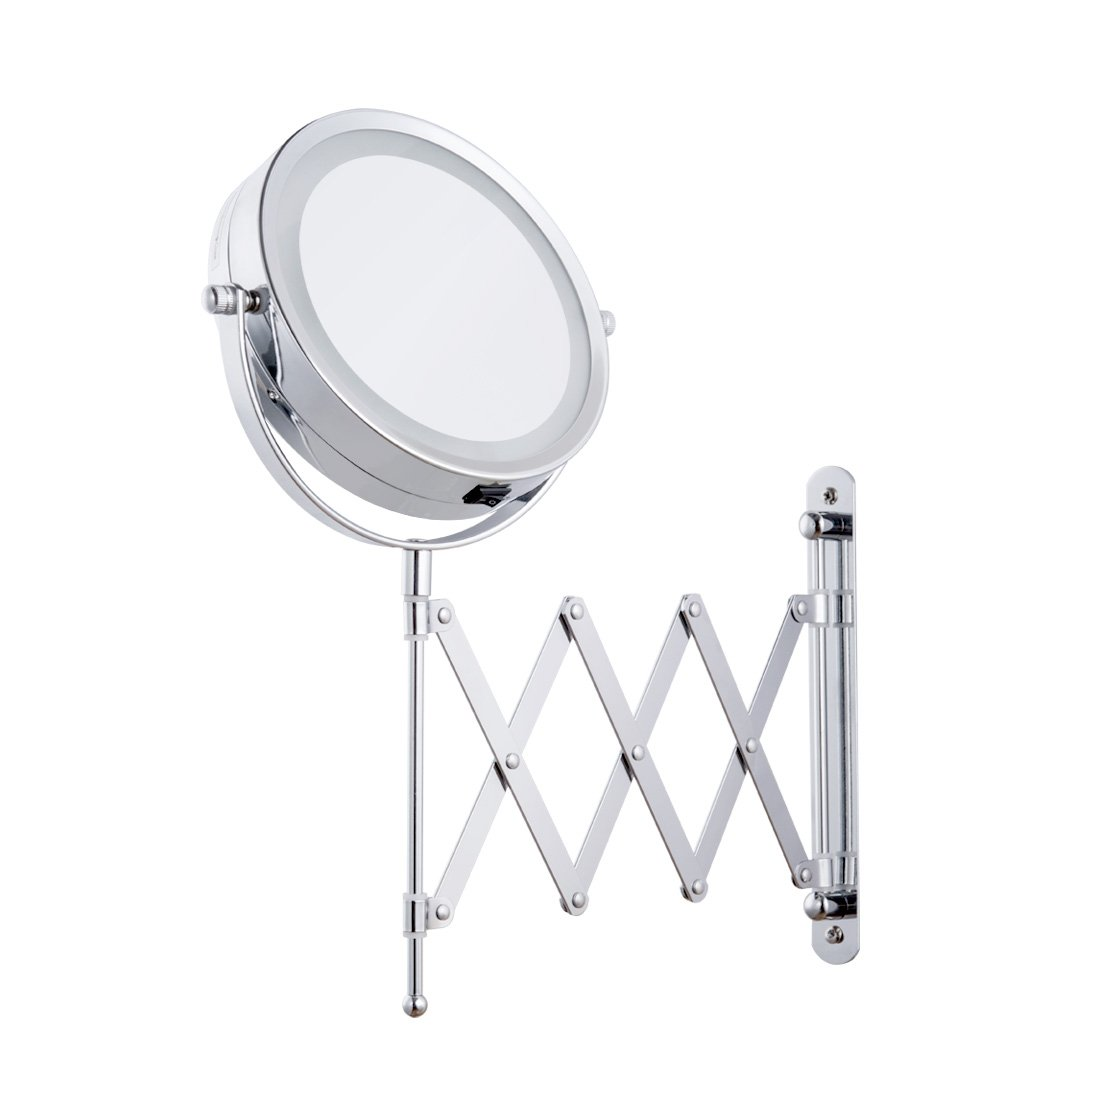 FIRMLOC Lighted Led Vanity Makeup Mirror 1X/5X Magnification Wall Mounted, Double Side, Adjustable Rotating Function, Lighting Powered by 4 x AAA Batteries (Not Included) by FIRMLOC